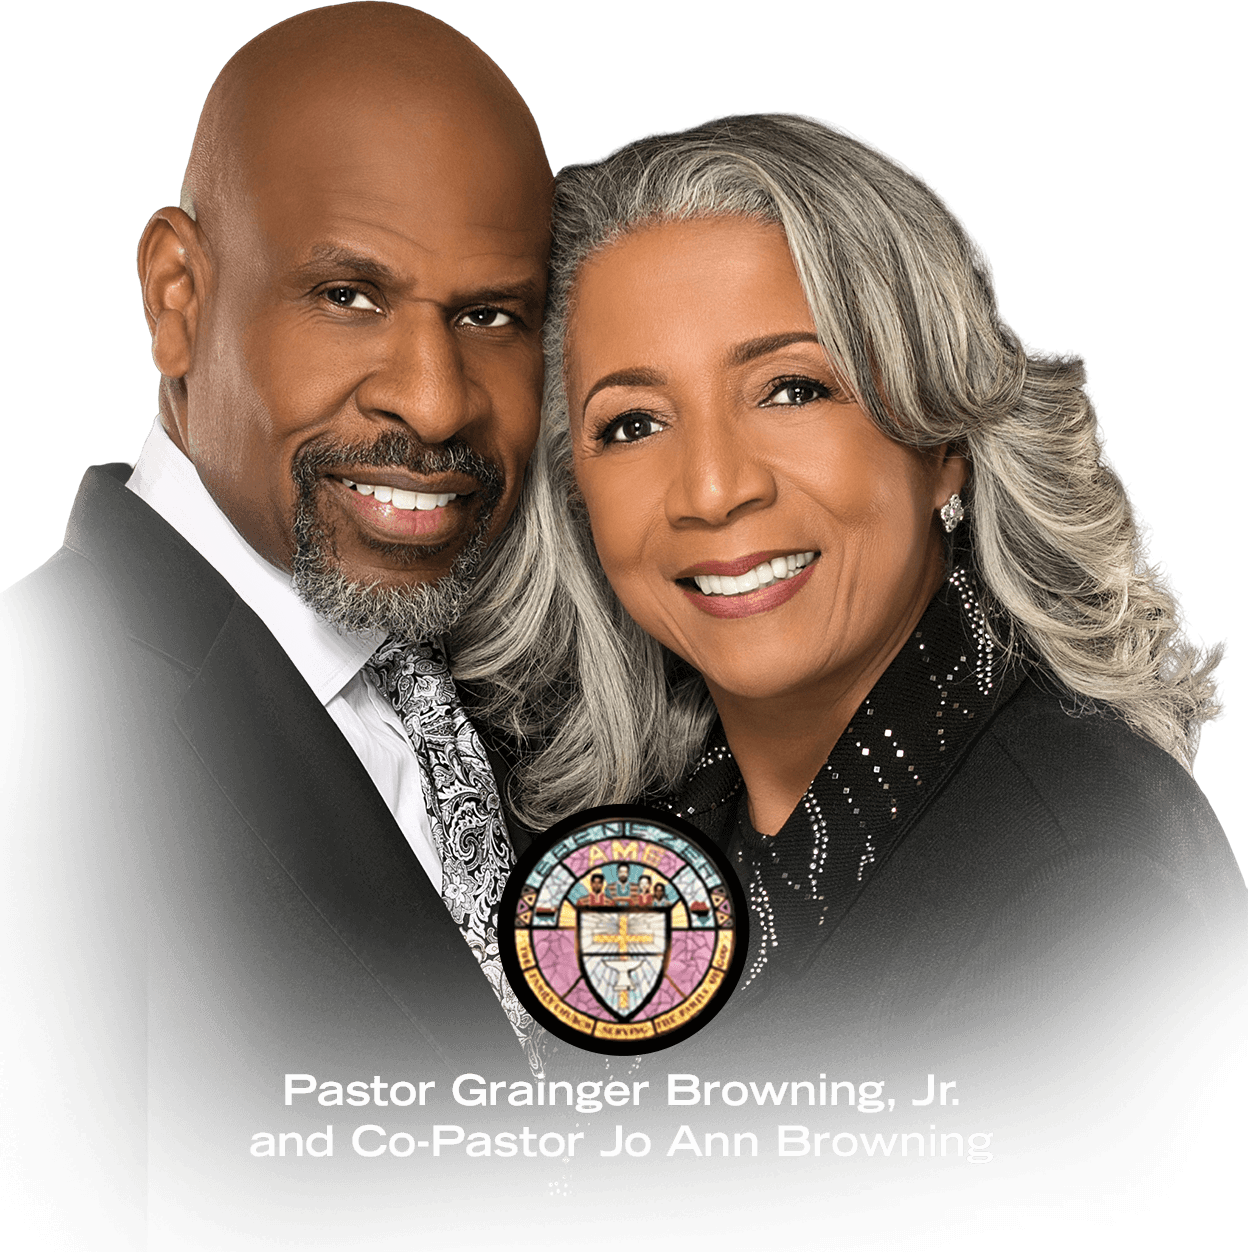 Rev. Dr. Grainger Browning, Jr. | Senior Pastor Rev. Dr. Jo Ann Browning | Co-Pastor